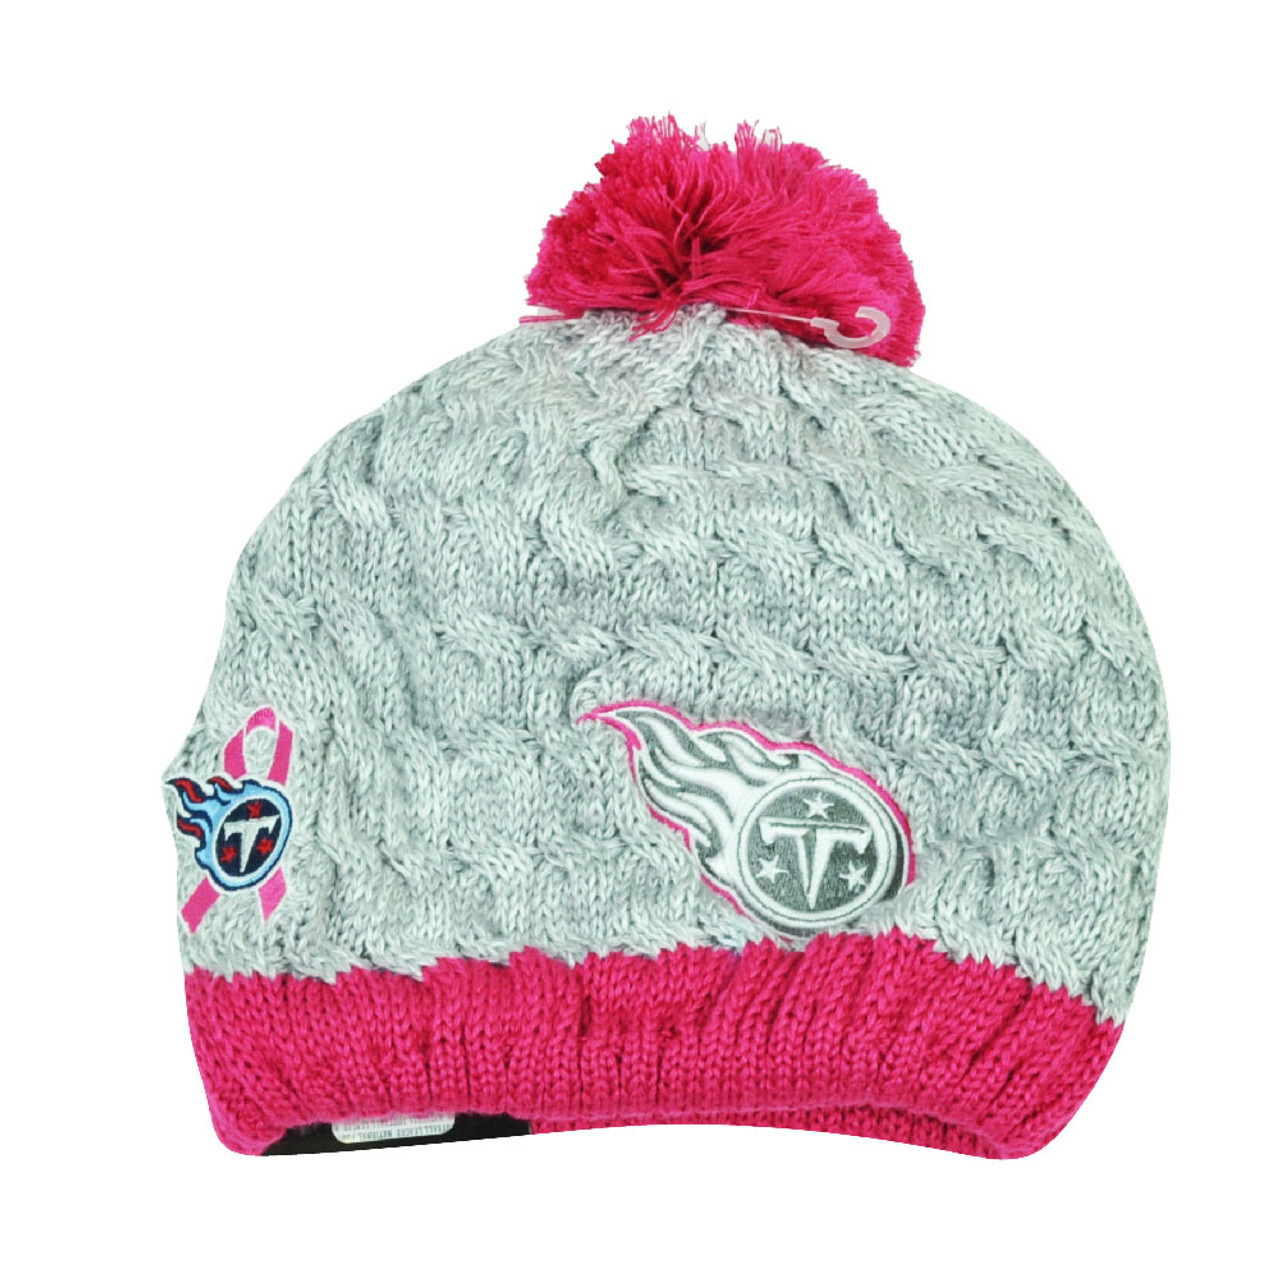 5ef45fd7d NFL New Era Breast Cancer Awareness Knit Beanie Tennessee Titans Pink  Womens Hat